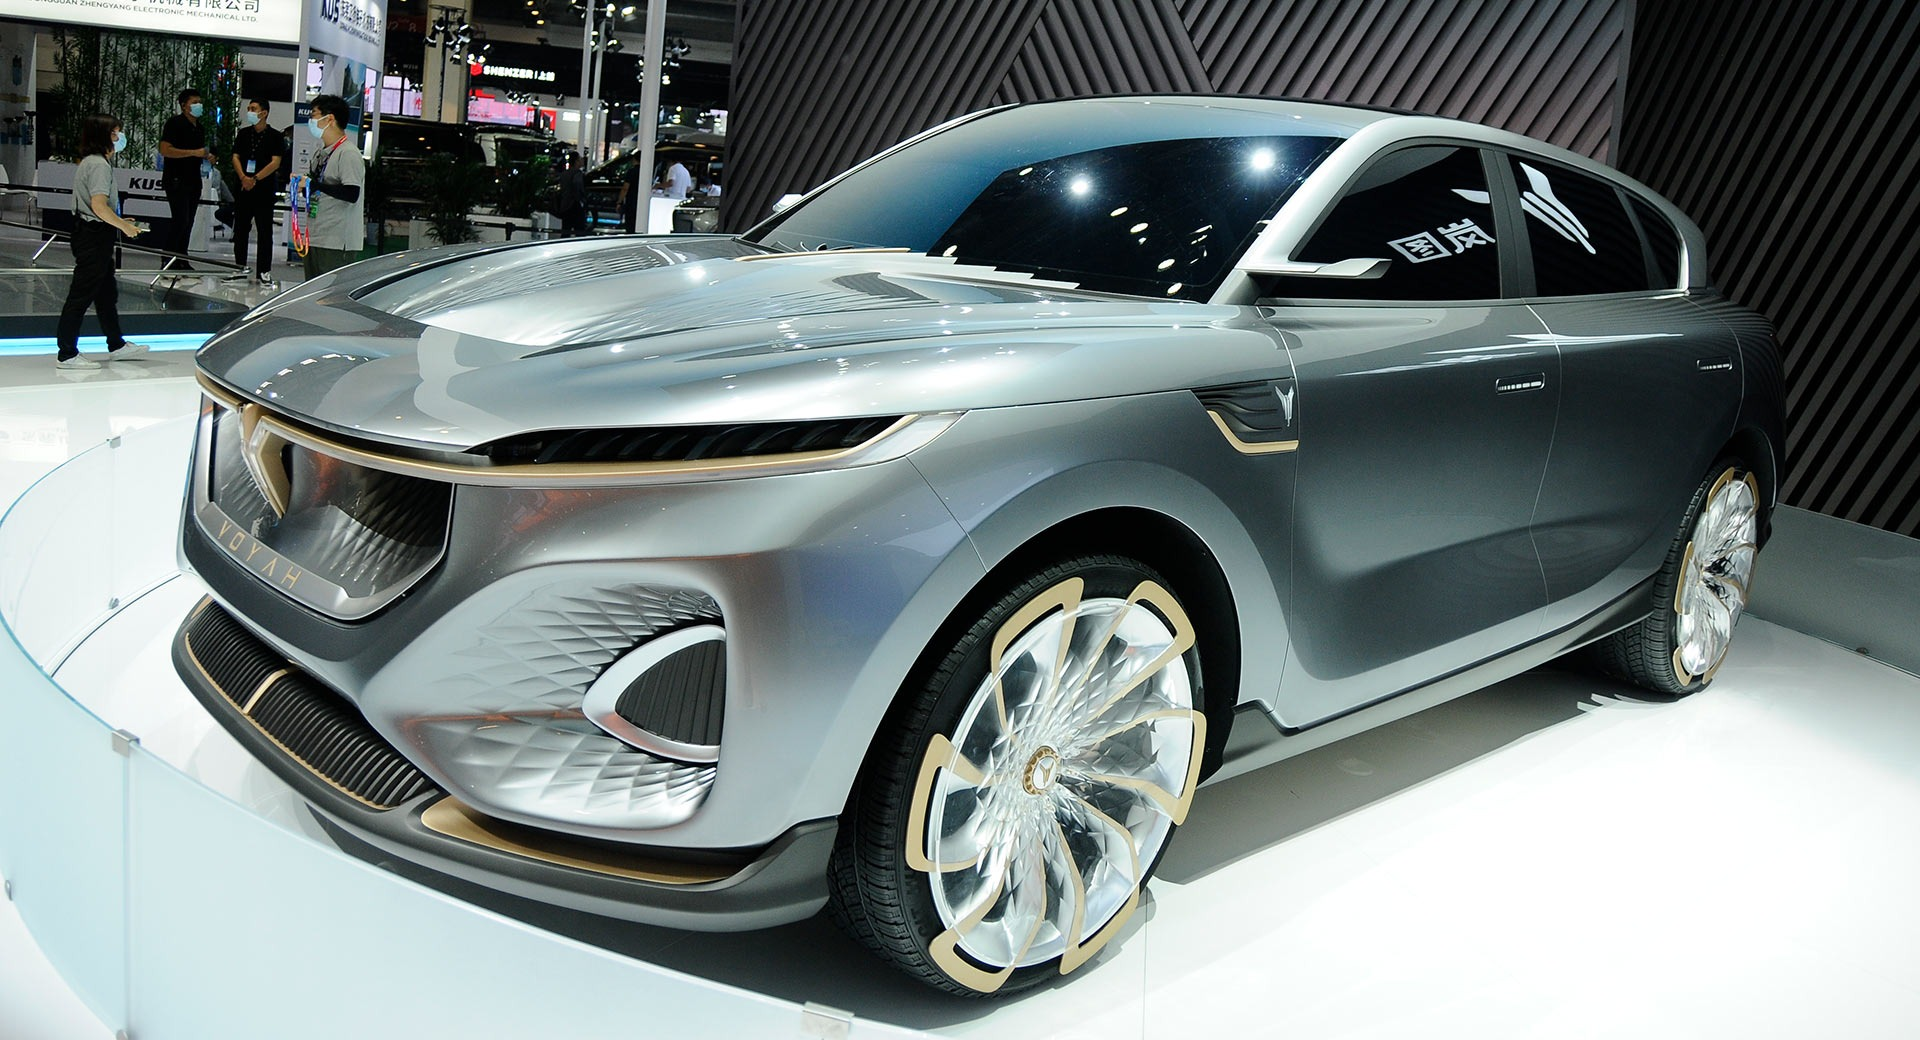 Budding luxury car brand Voyah came to this year's Auto Beijing show with the iFree Concept, which is now being tested on public roads and should soon hit production. The premiere is scheduled on Wednesday, December 16, 2020.